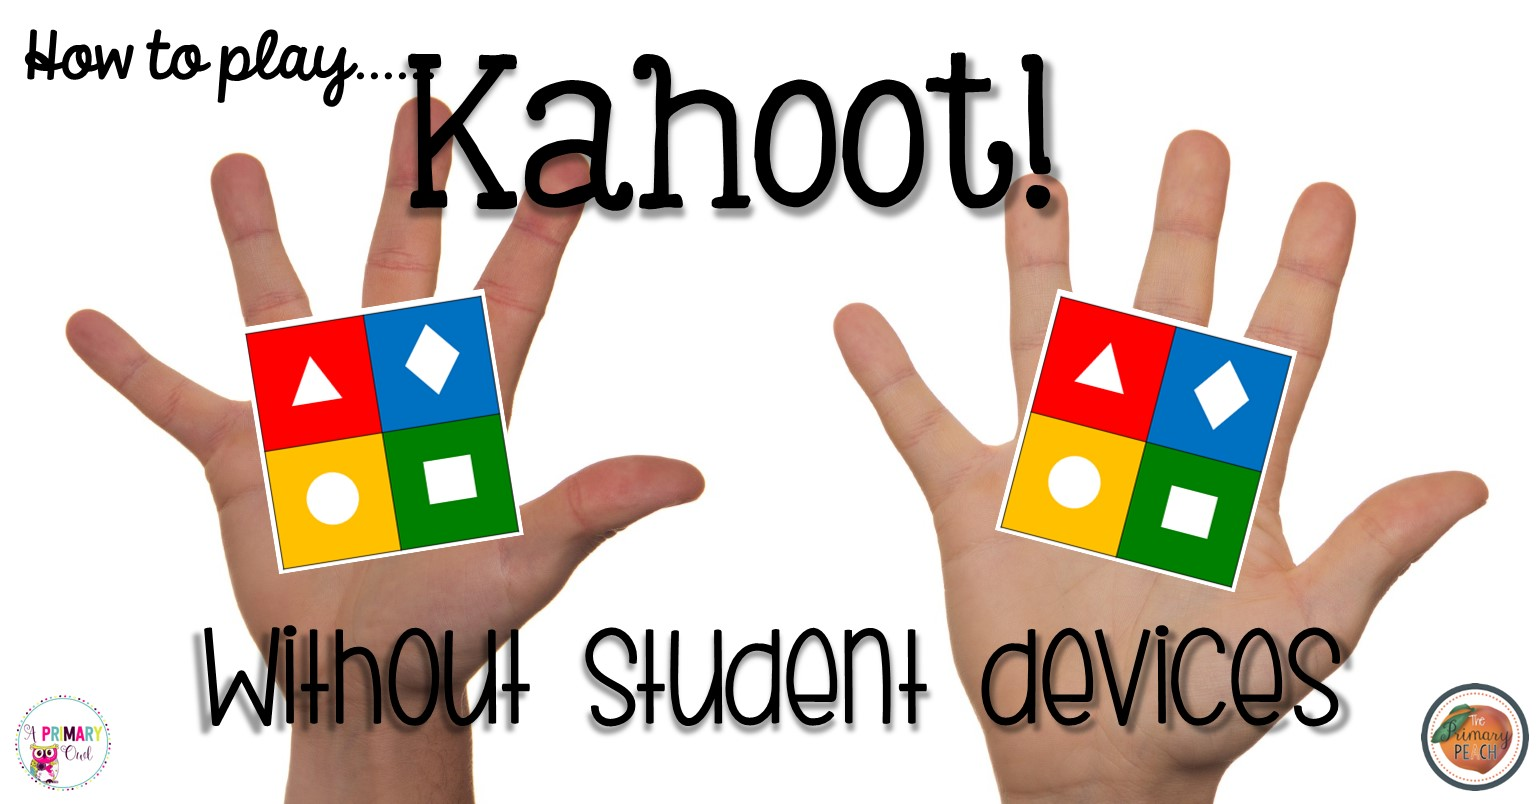 The Primary Peach: How to play Kahoot without student devices!